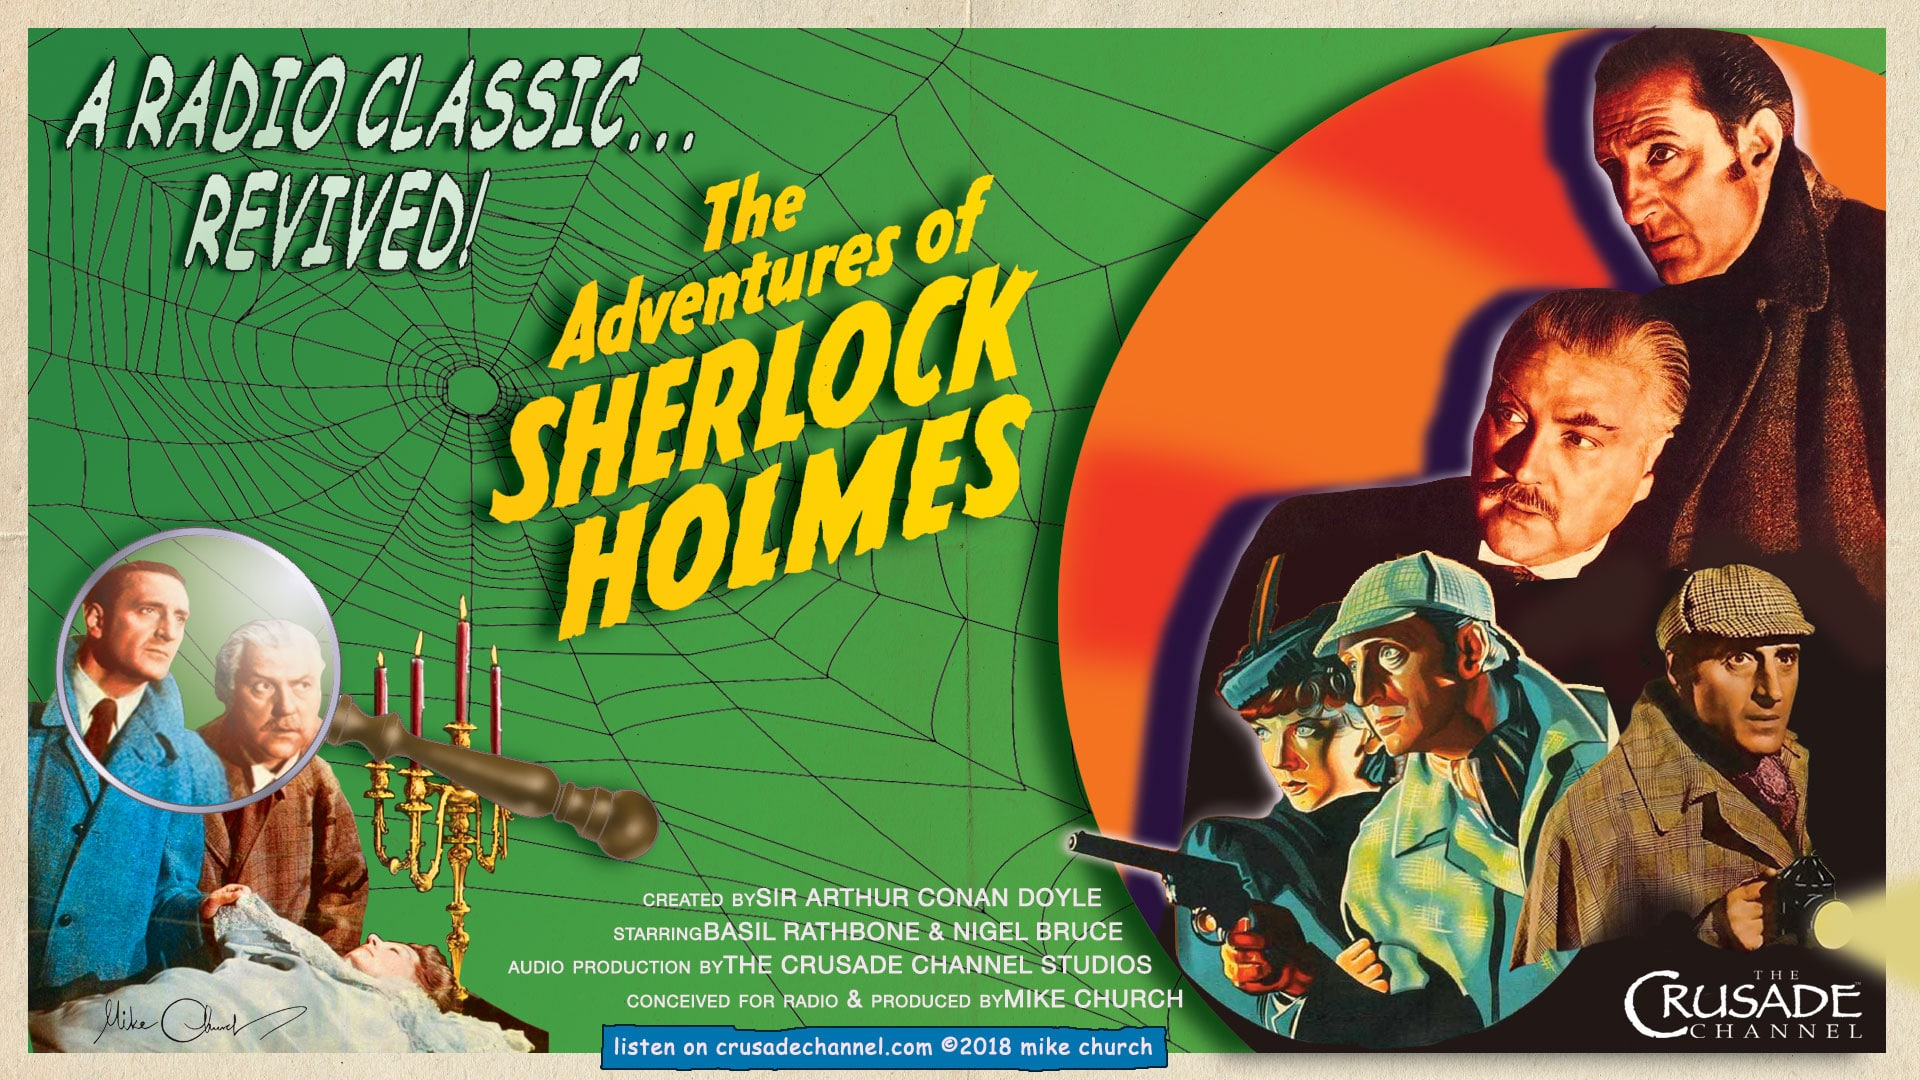 A CRUSADE Original: Mandell Kramer Presents, Monday Mystery Theater & The New Adventures of Sherlock Holmes!